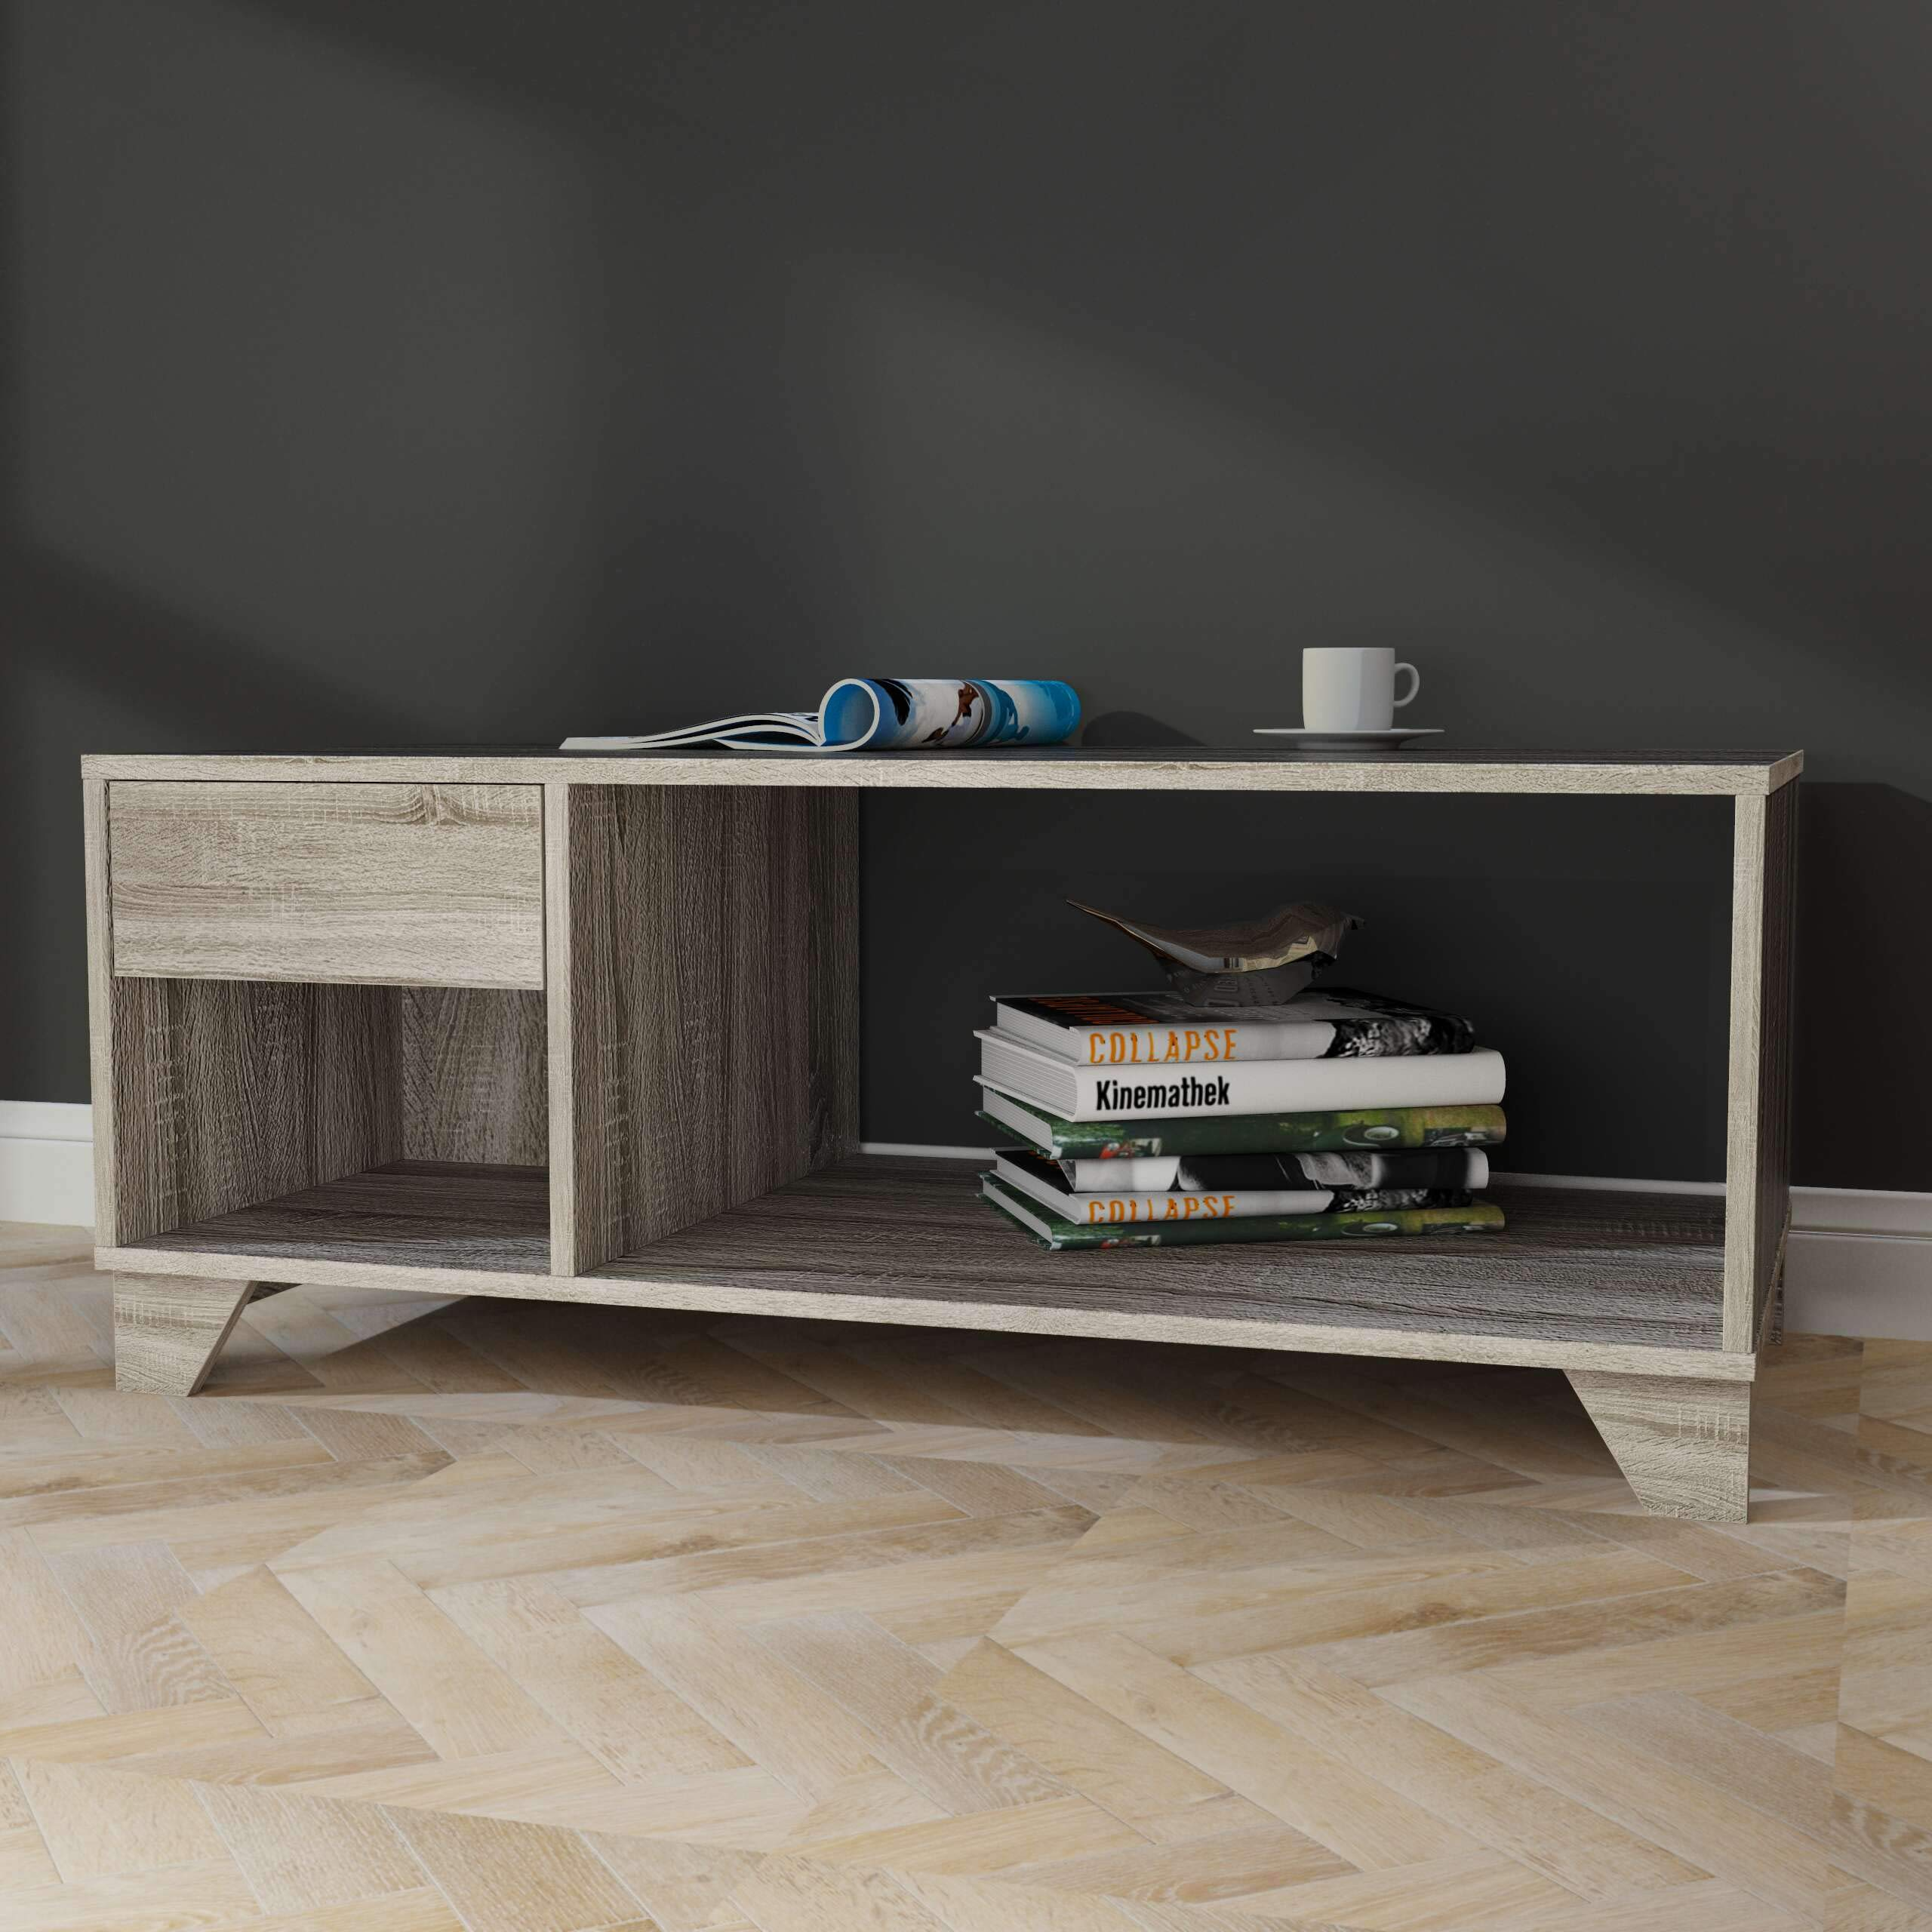 Weathered Grey Oak Coffee Table with Drawer and Open Storage Display by Unknown